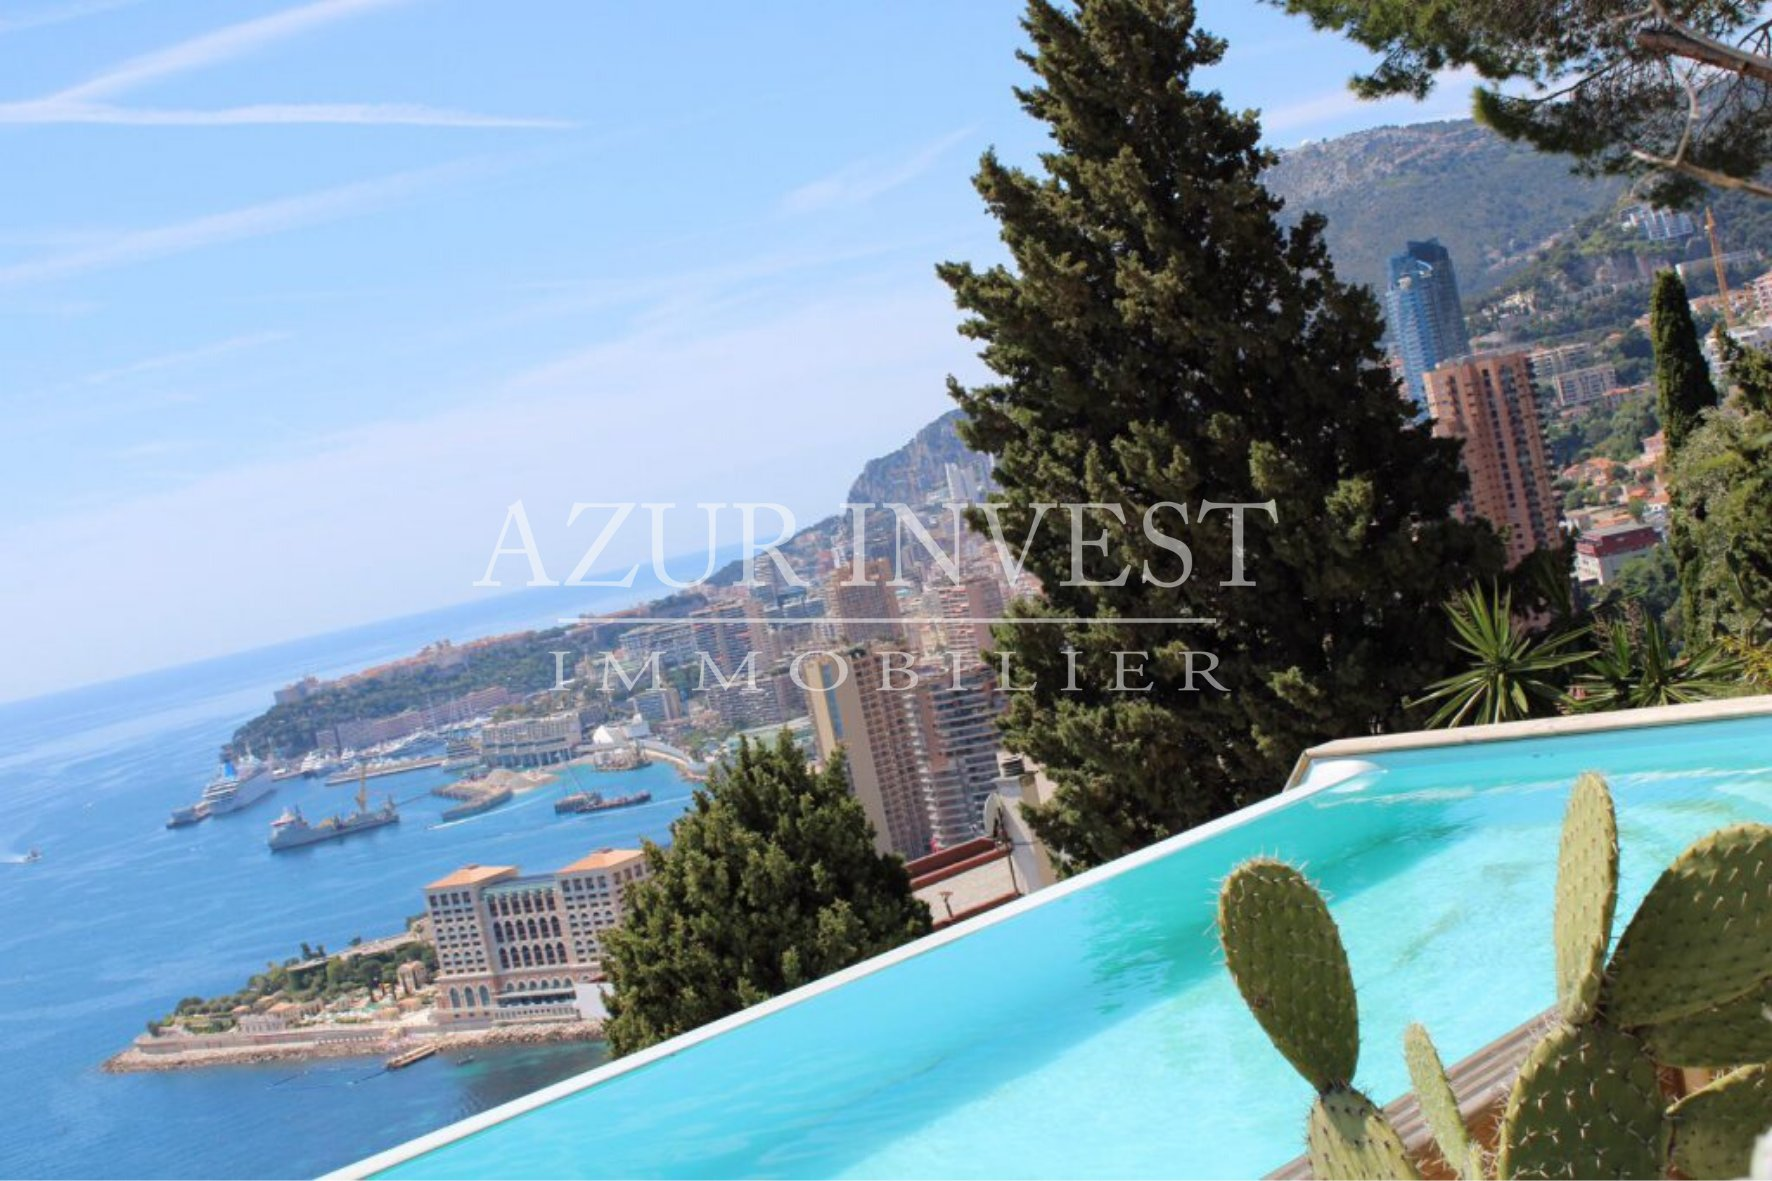 SEA VIEW VILLA ABOVE MONTE-CARLO BEACH, RCM